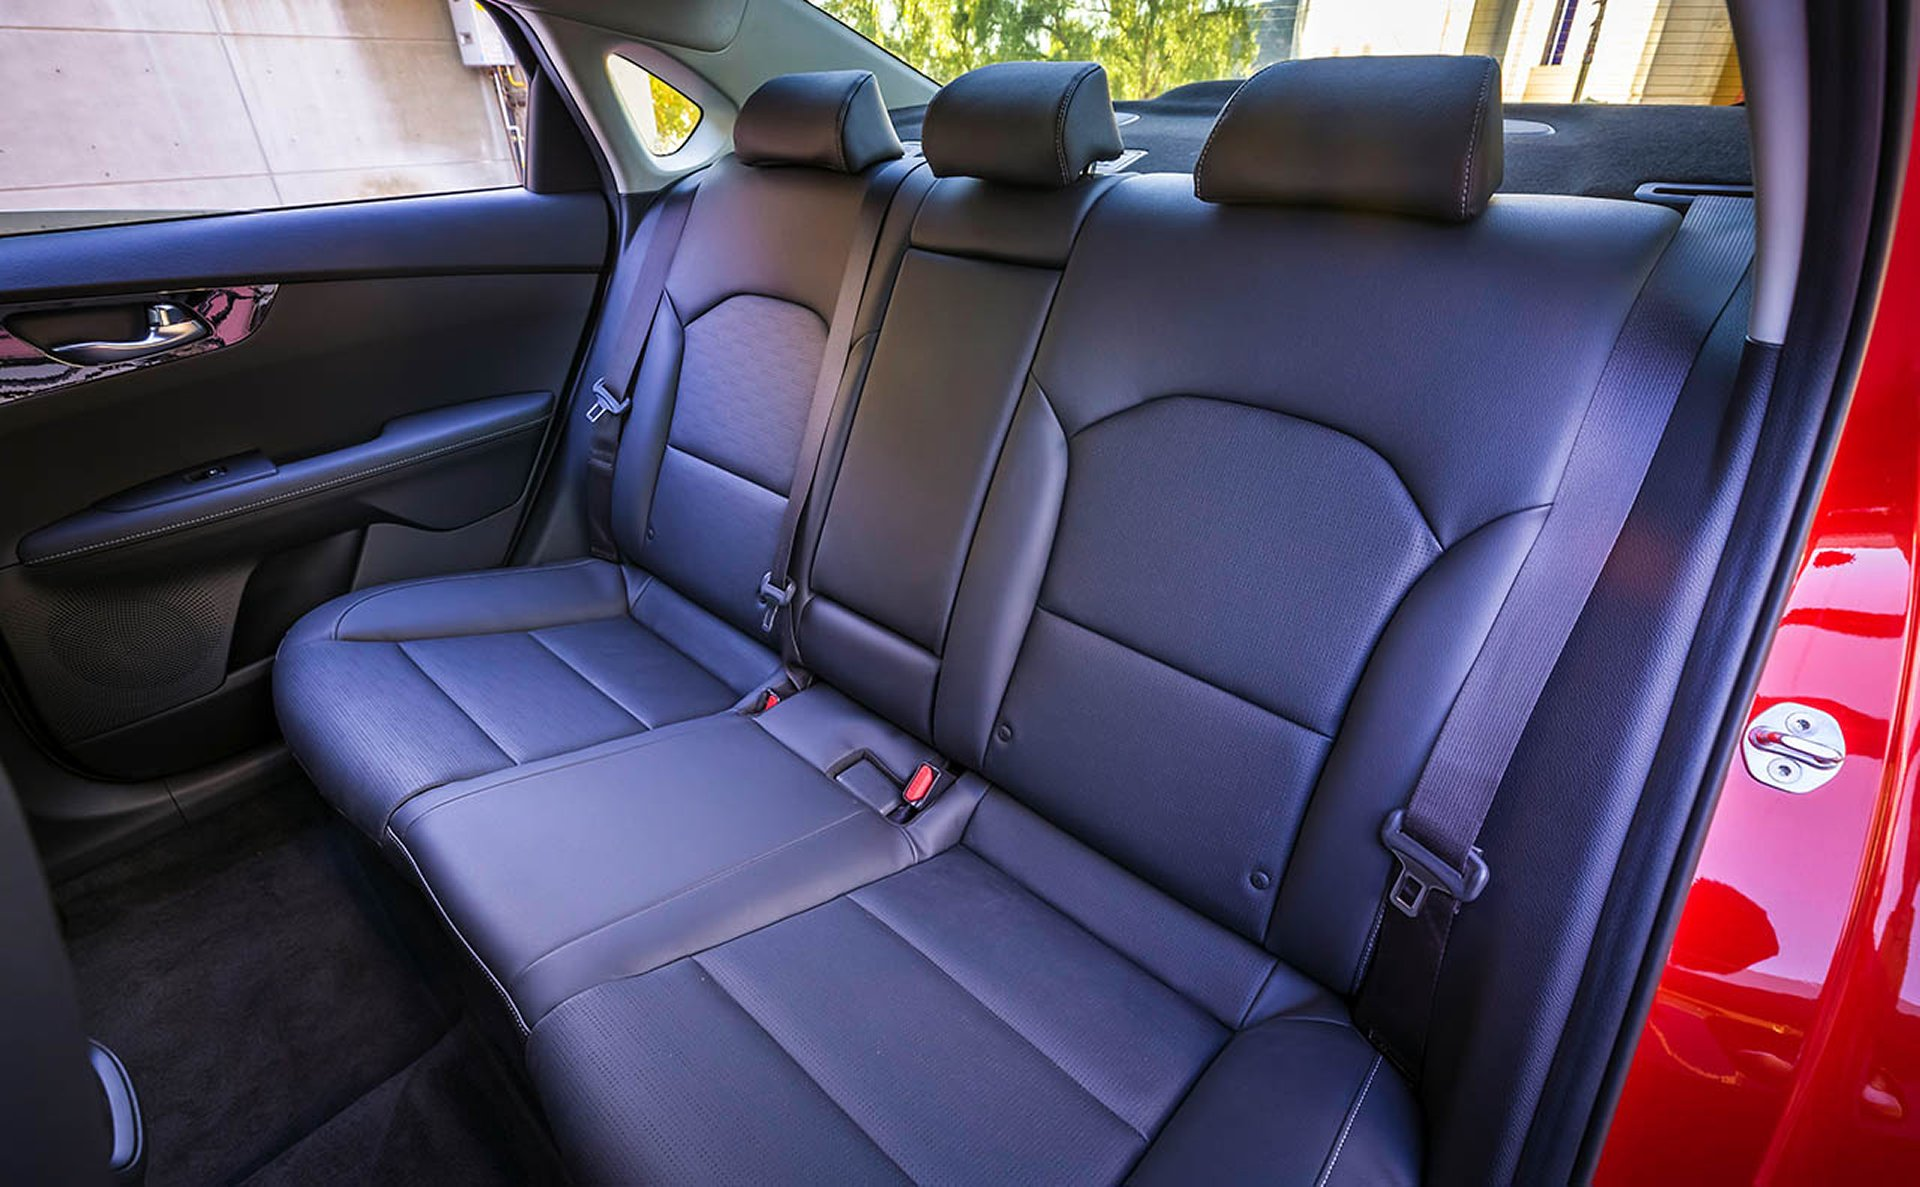 Enjoy Maximum Comfort During Any Drive in the Forte!